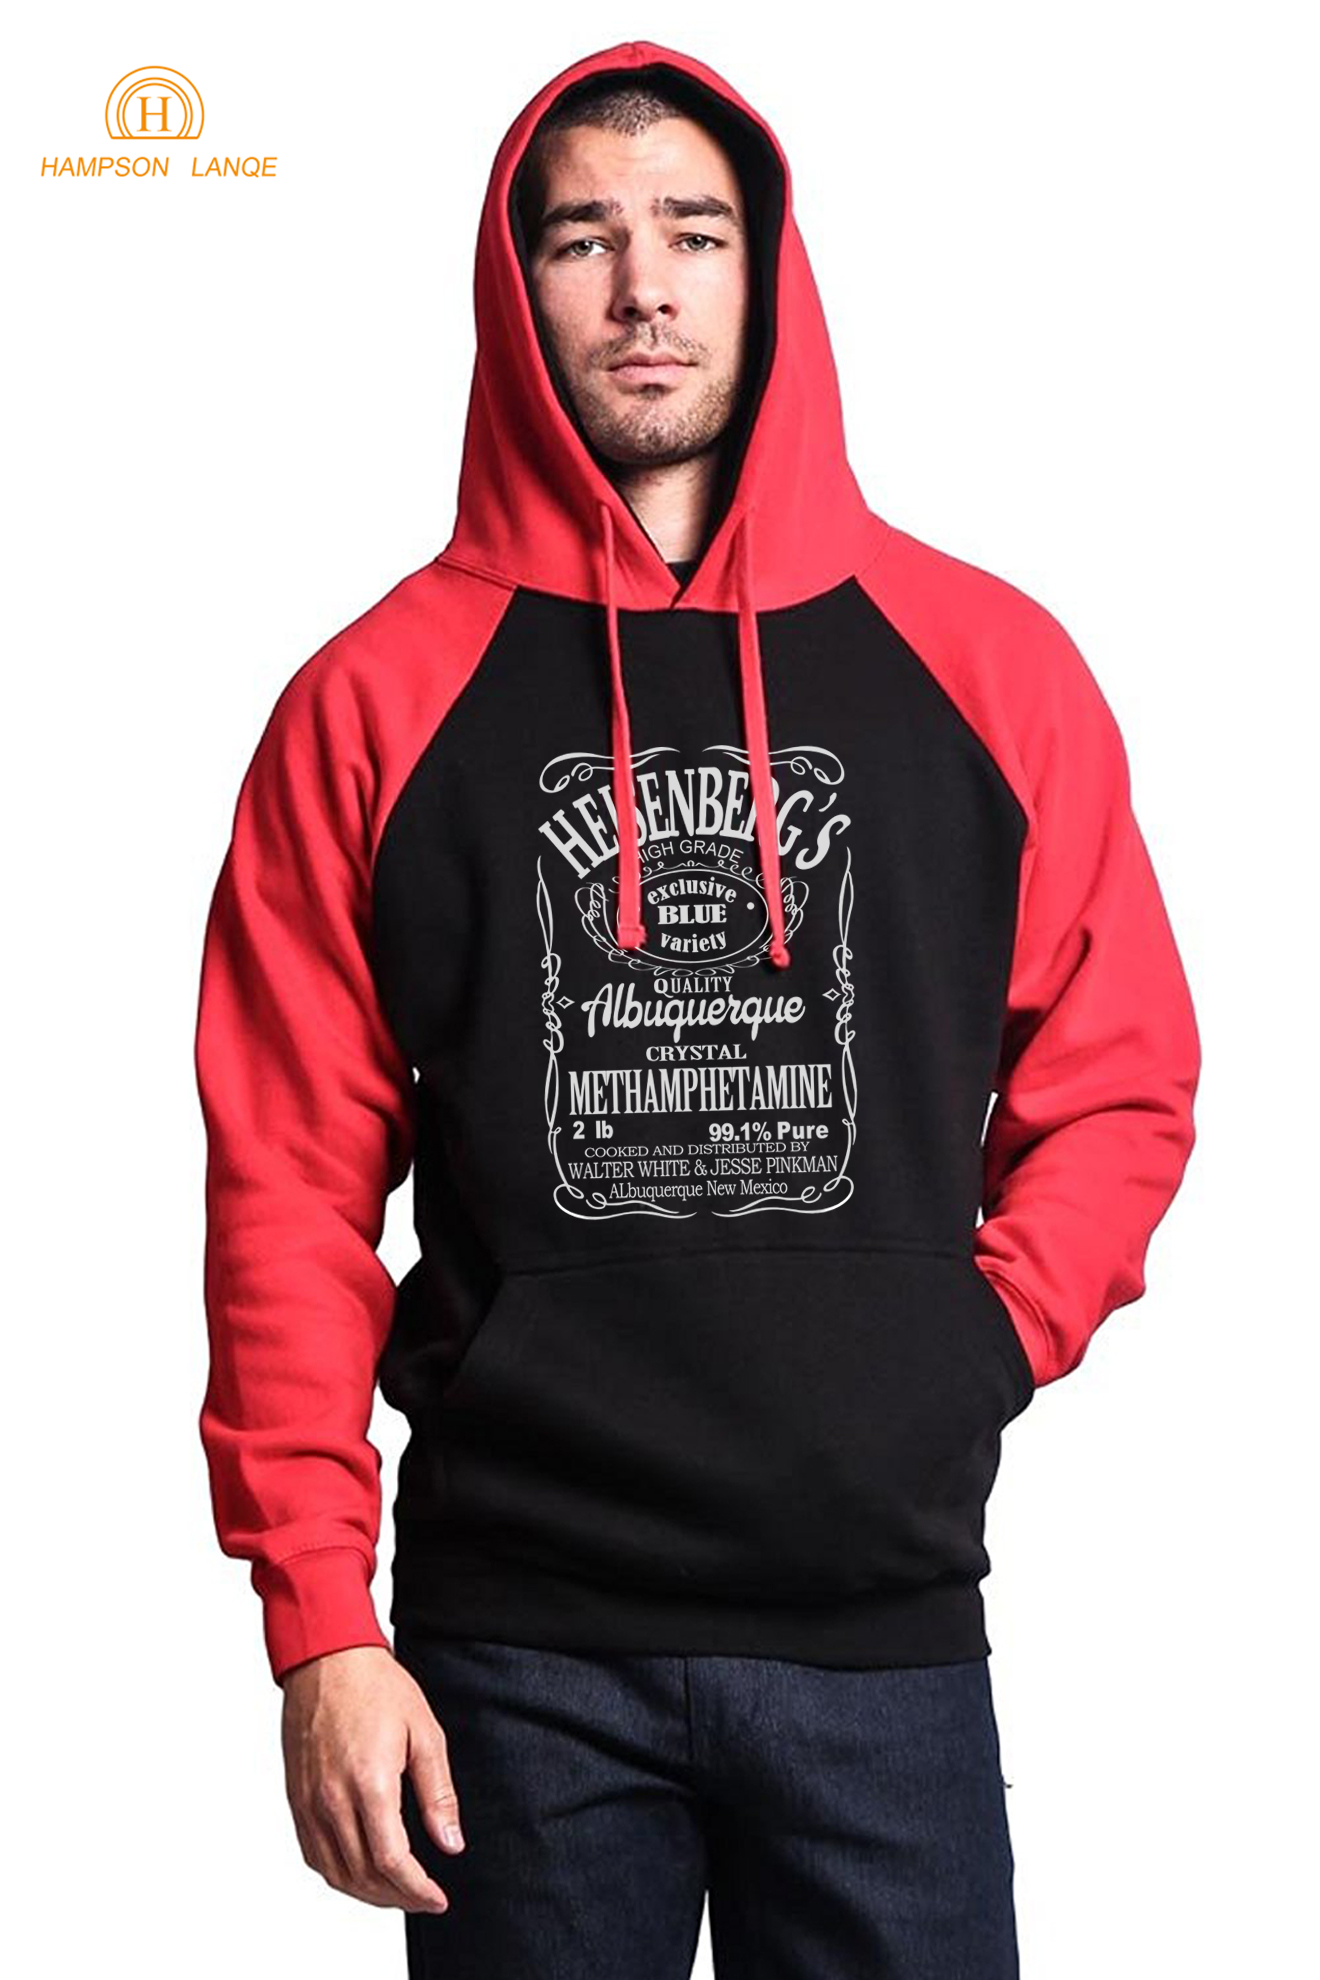 Breaking Bad Heisenberg Casual Hoodies Men 2019 Autumn Winter Fleece Raglan Sweatshirts Men's Sportswear Loose Fit Streetwear